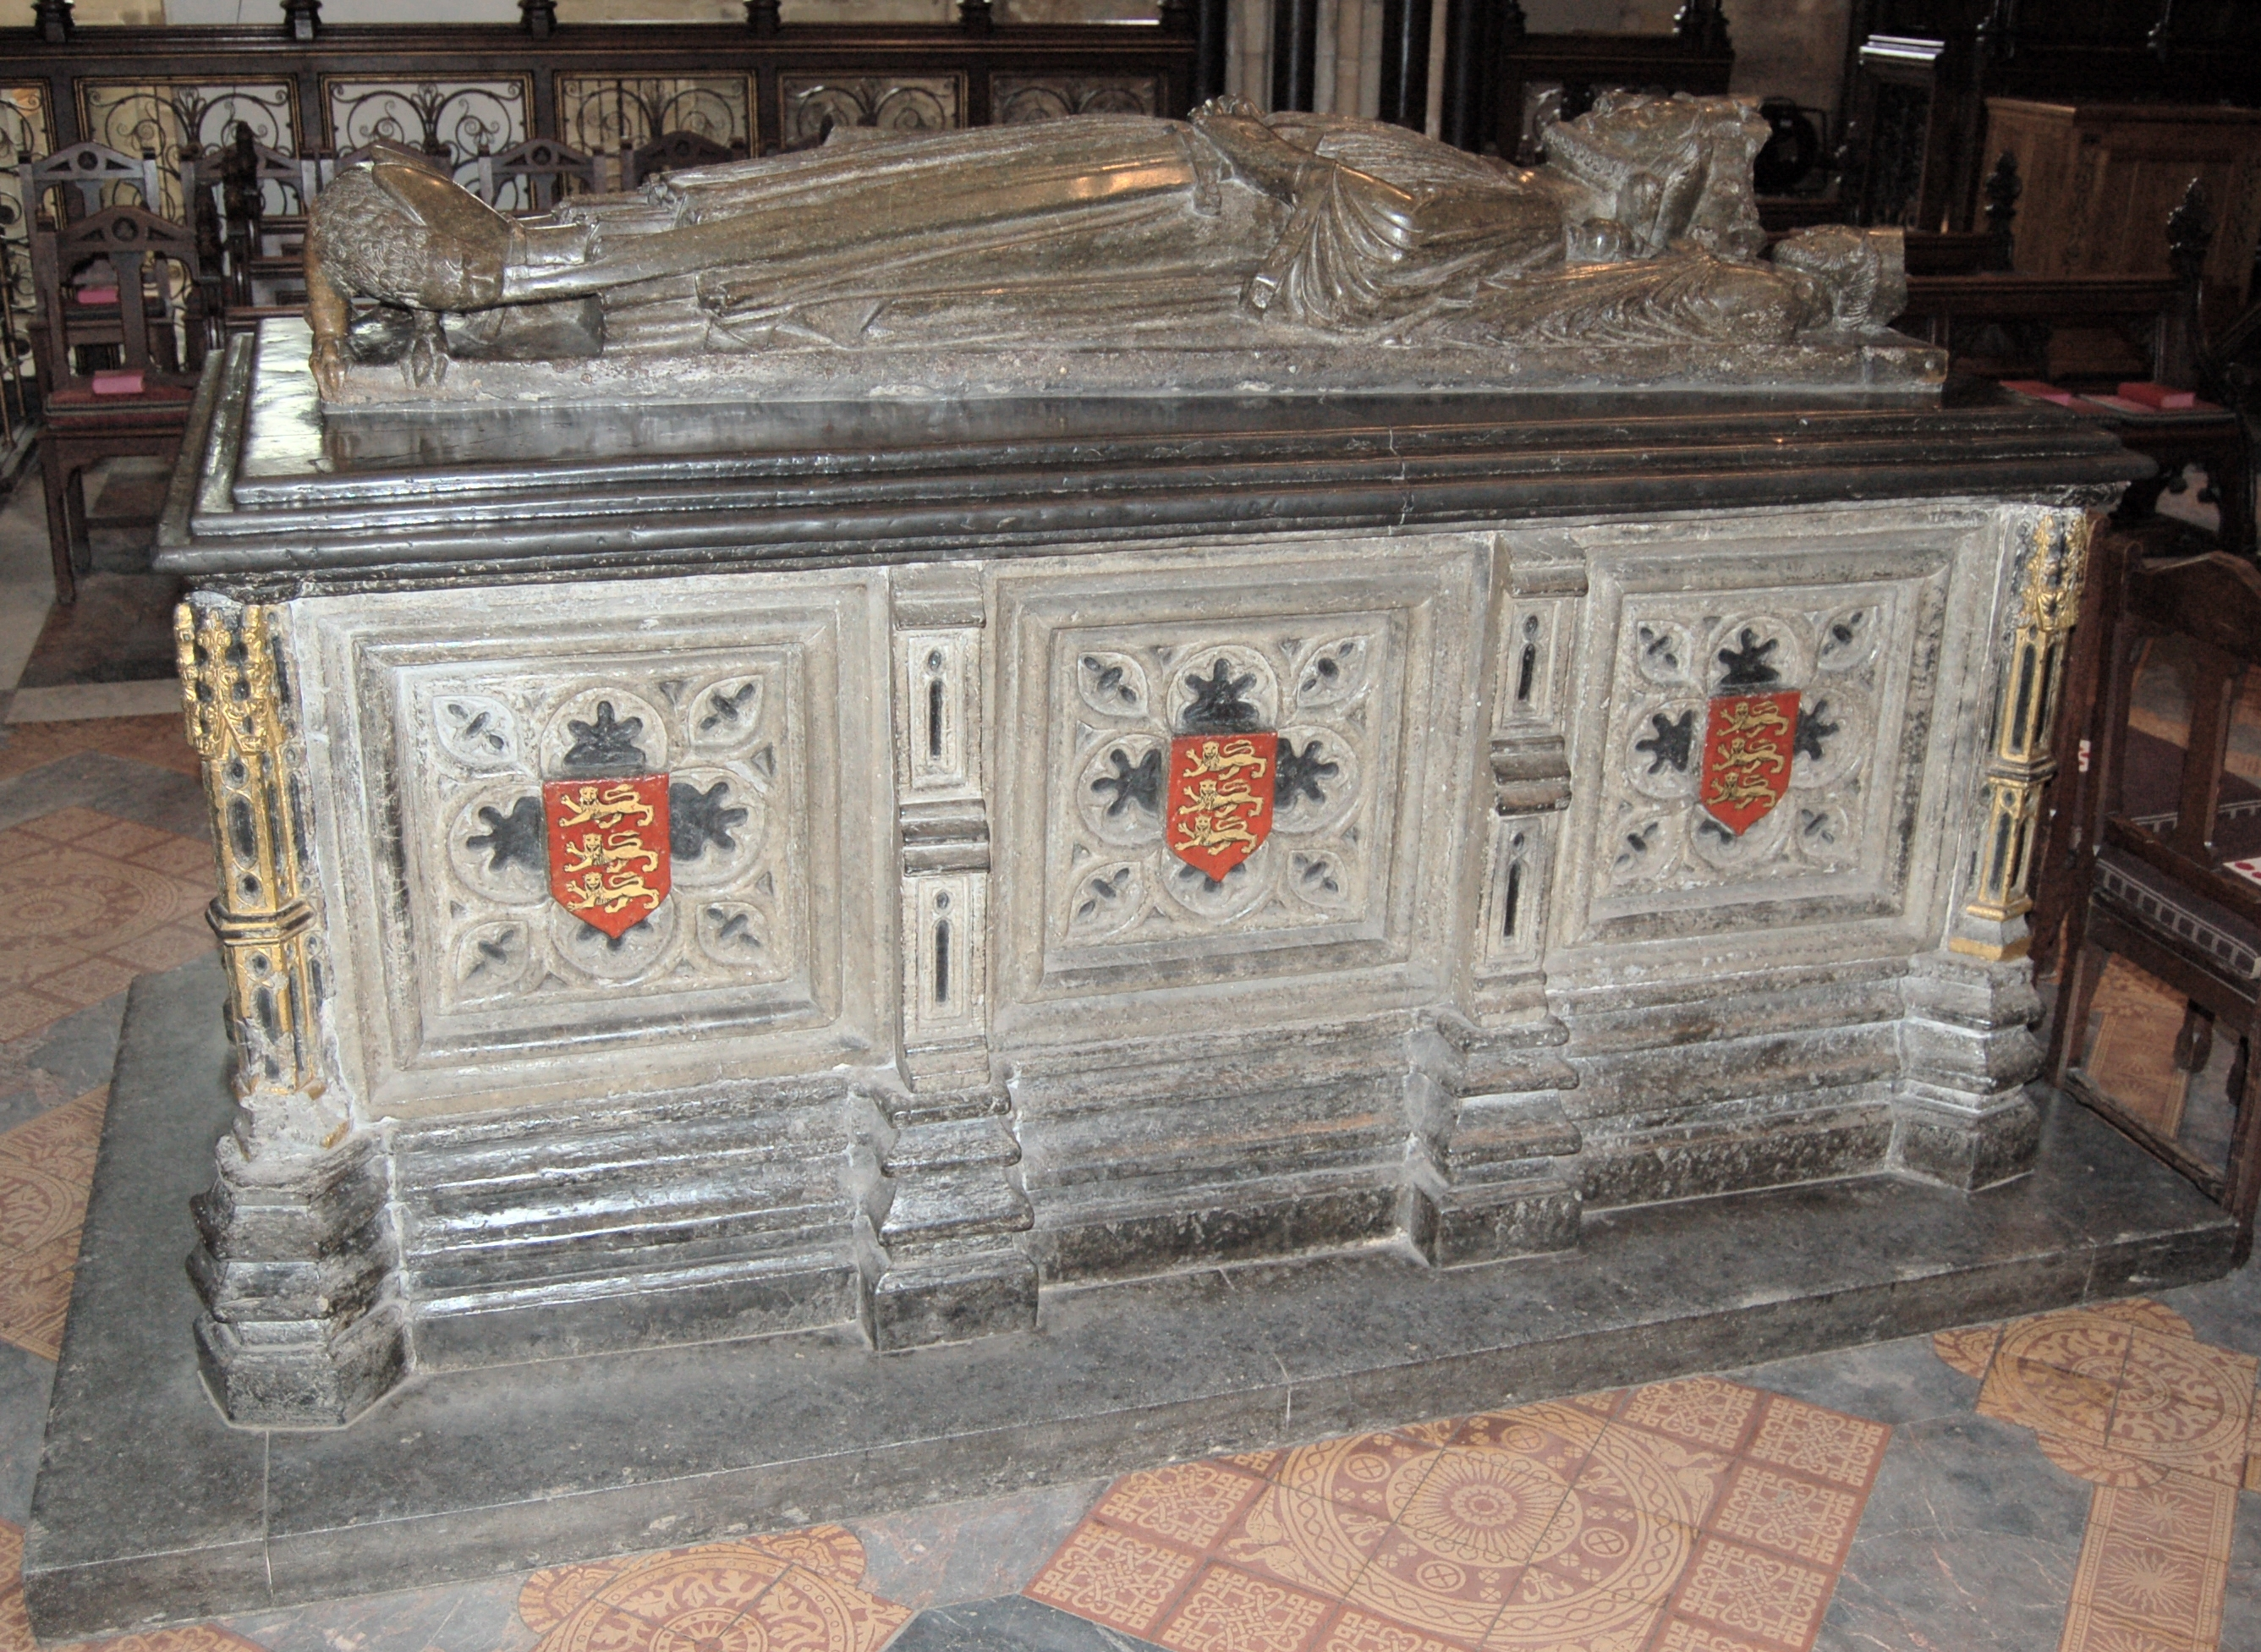 File:King Johns tomb.jpg - Wikimedia Commons